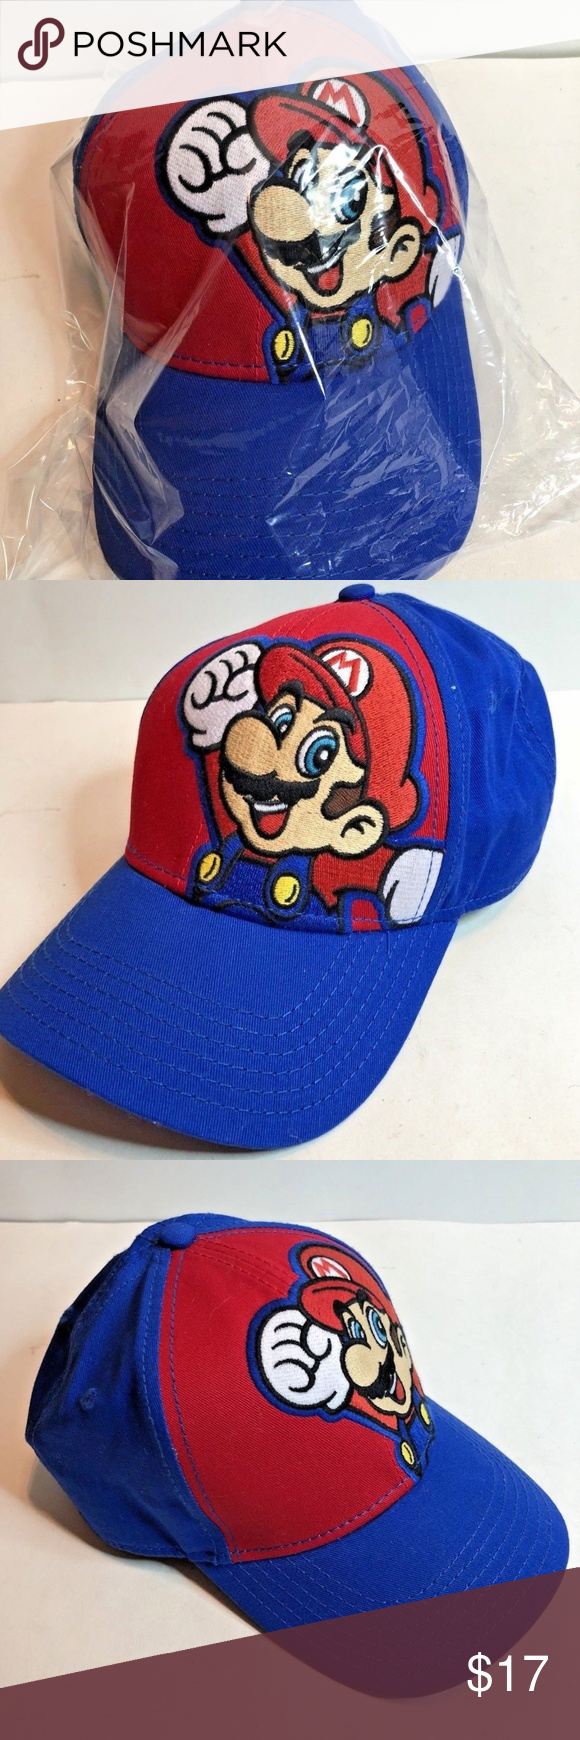 Super Mario Hat Cap Embroidered Quality Size Youth Super Mario Hat Mario Hat Unique Items Products